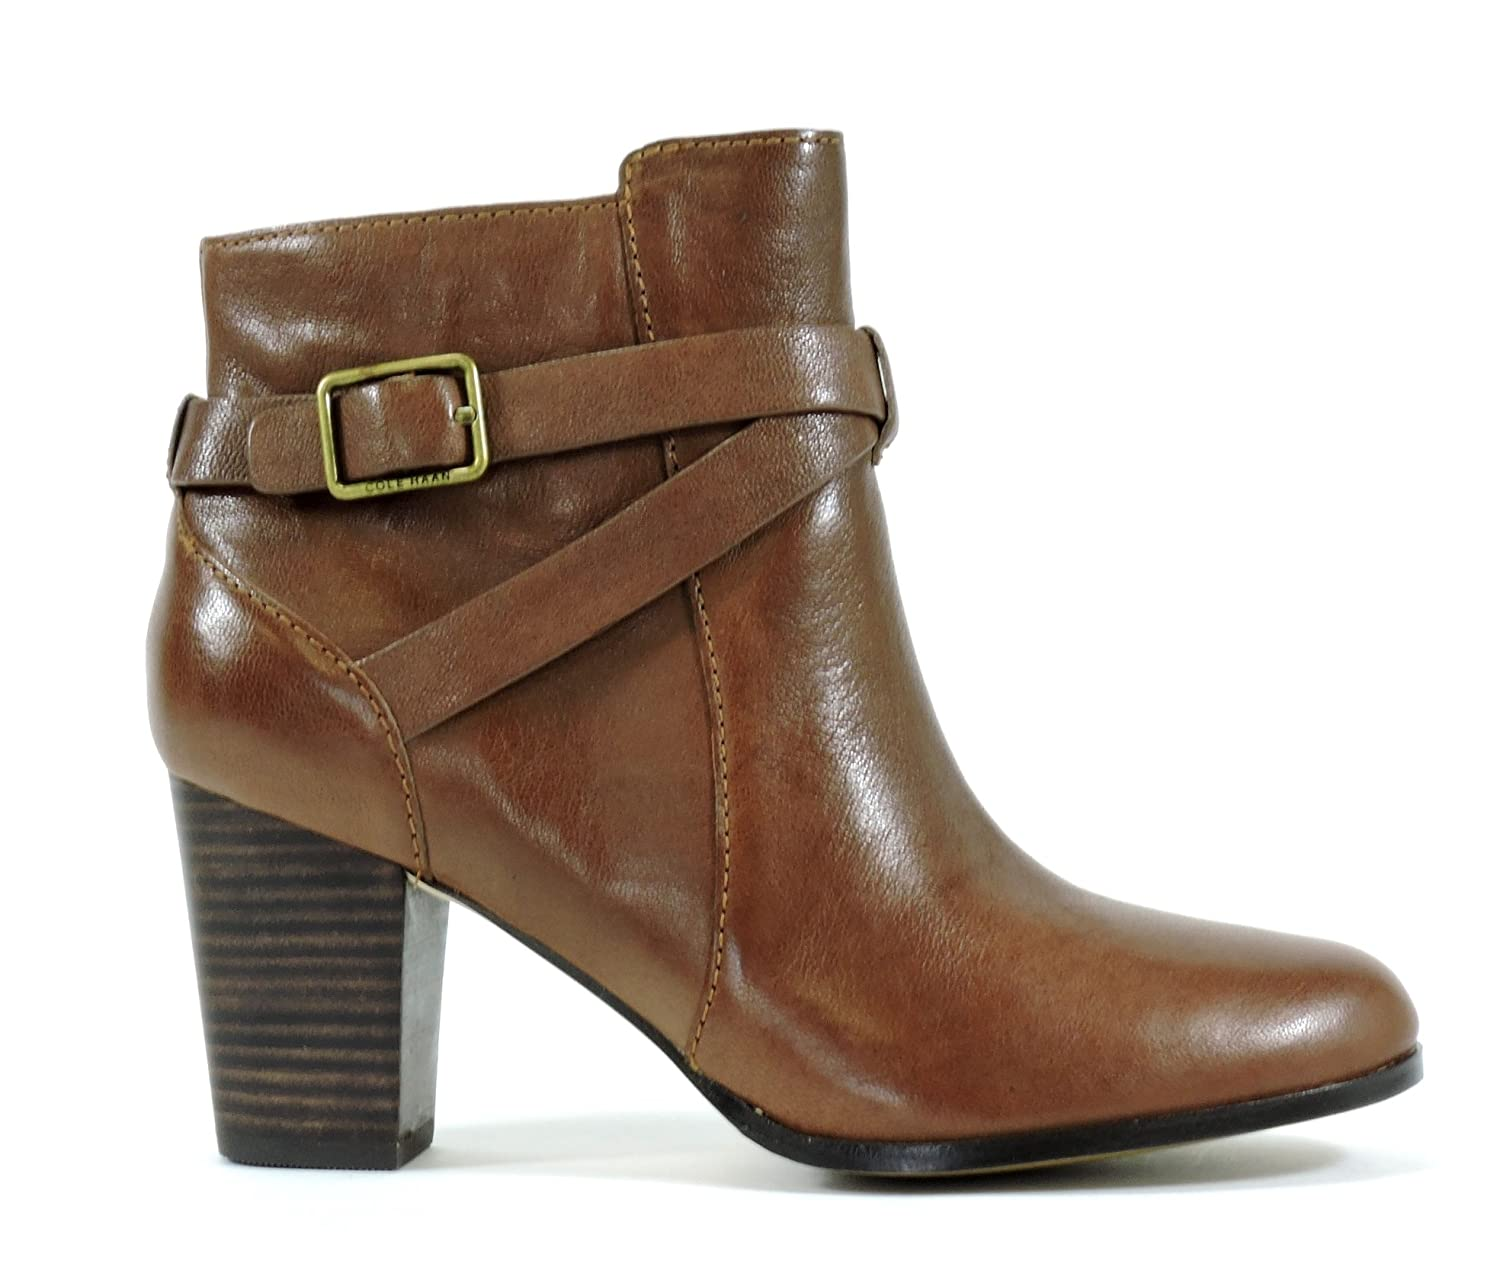 Amazon.com   Cole Haan Women's Cassidy Buckle Leather Bootie, Sequoia, 9.5  M US   Boots